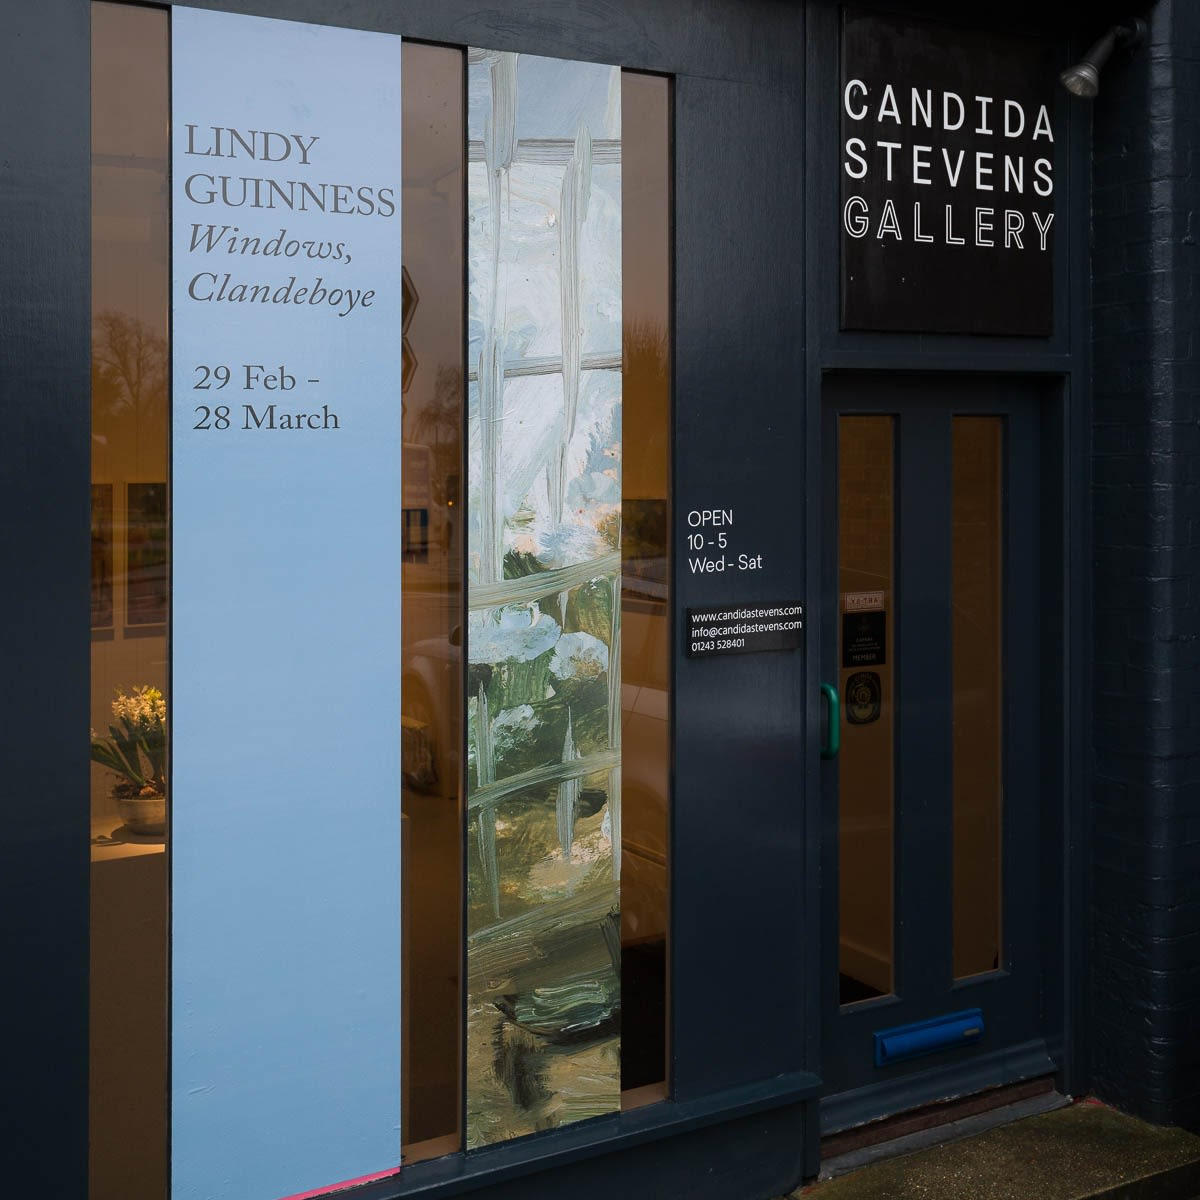 Lindy Guinness Instal2020 Candida Stevens Gallery 21 Web